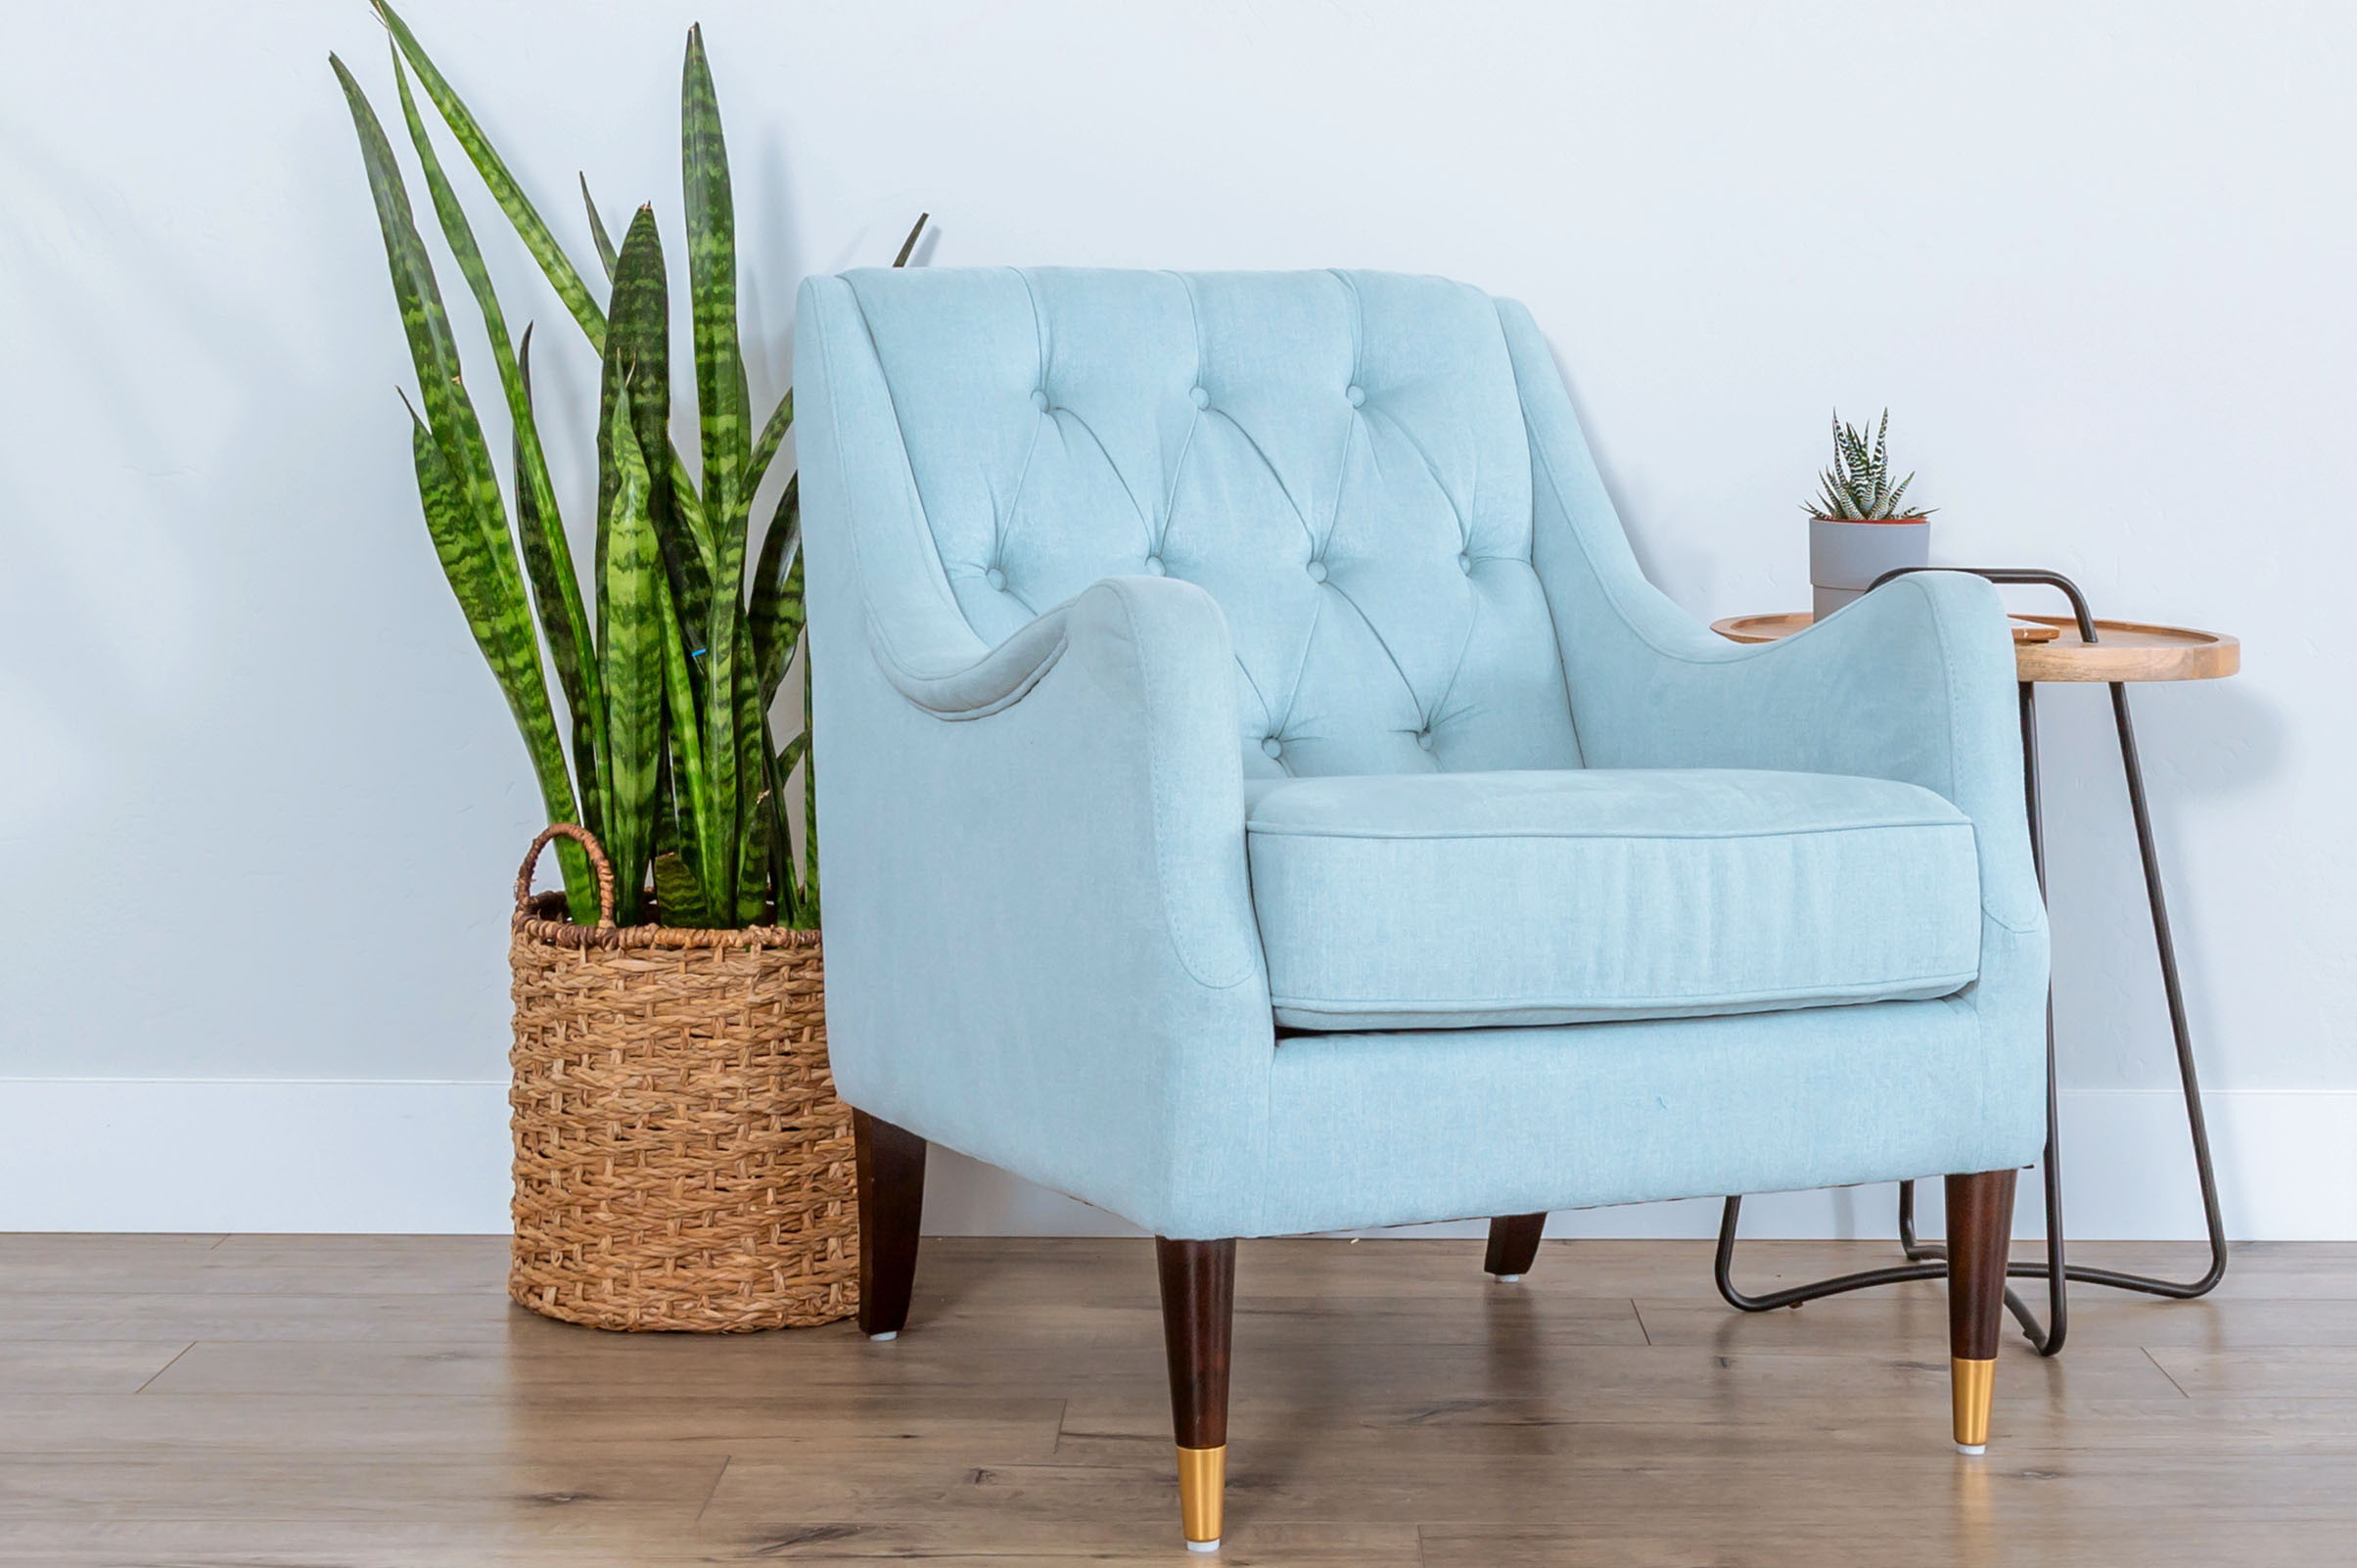 snake plants the perfect houseplant for lazy people - OC Succulents